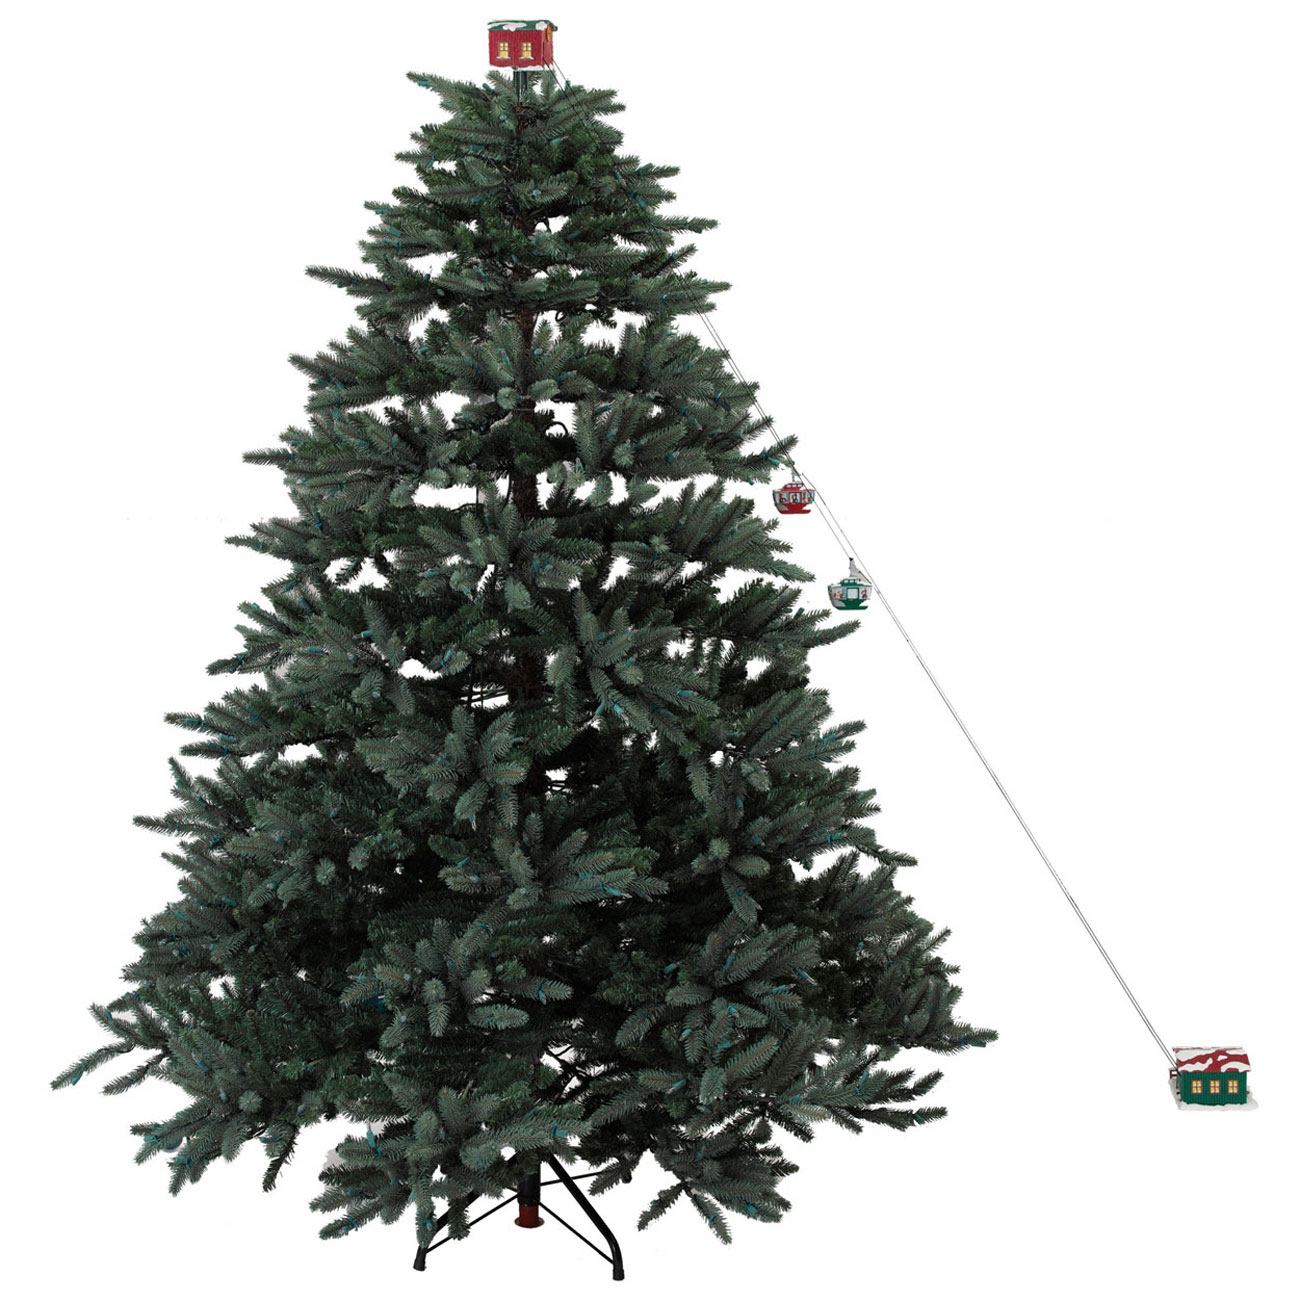 Mr. Christmas   Animated Christmas Tree Cable Cars